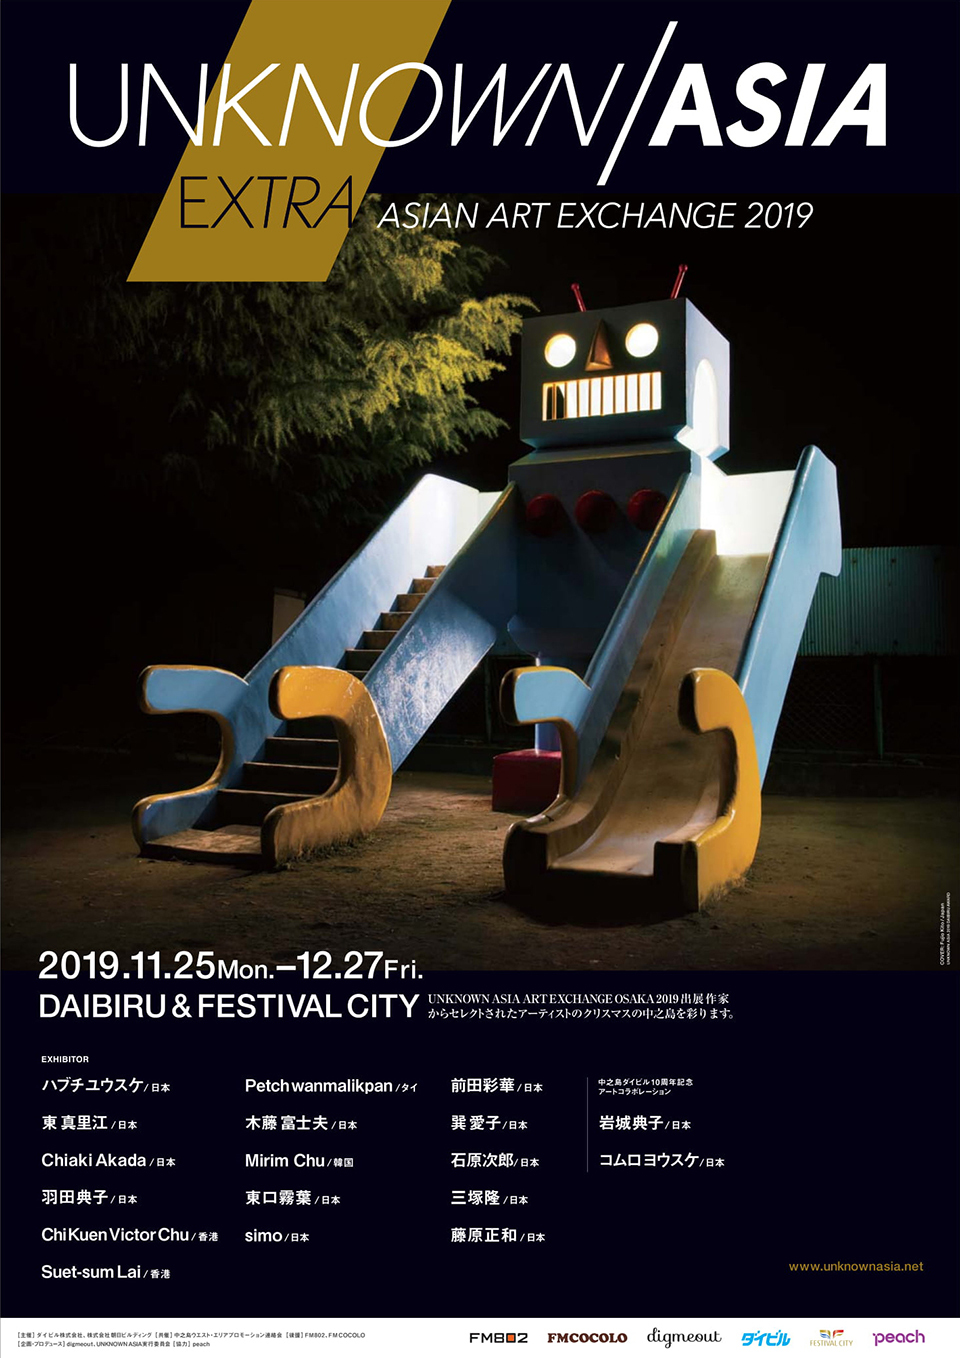 【今年も開催】UNKNOWN ASIA EXTRA ASIAN ART EXCHANGE 2019/